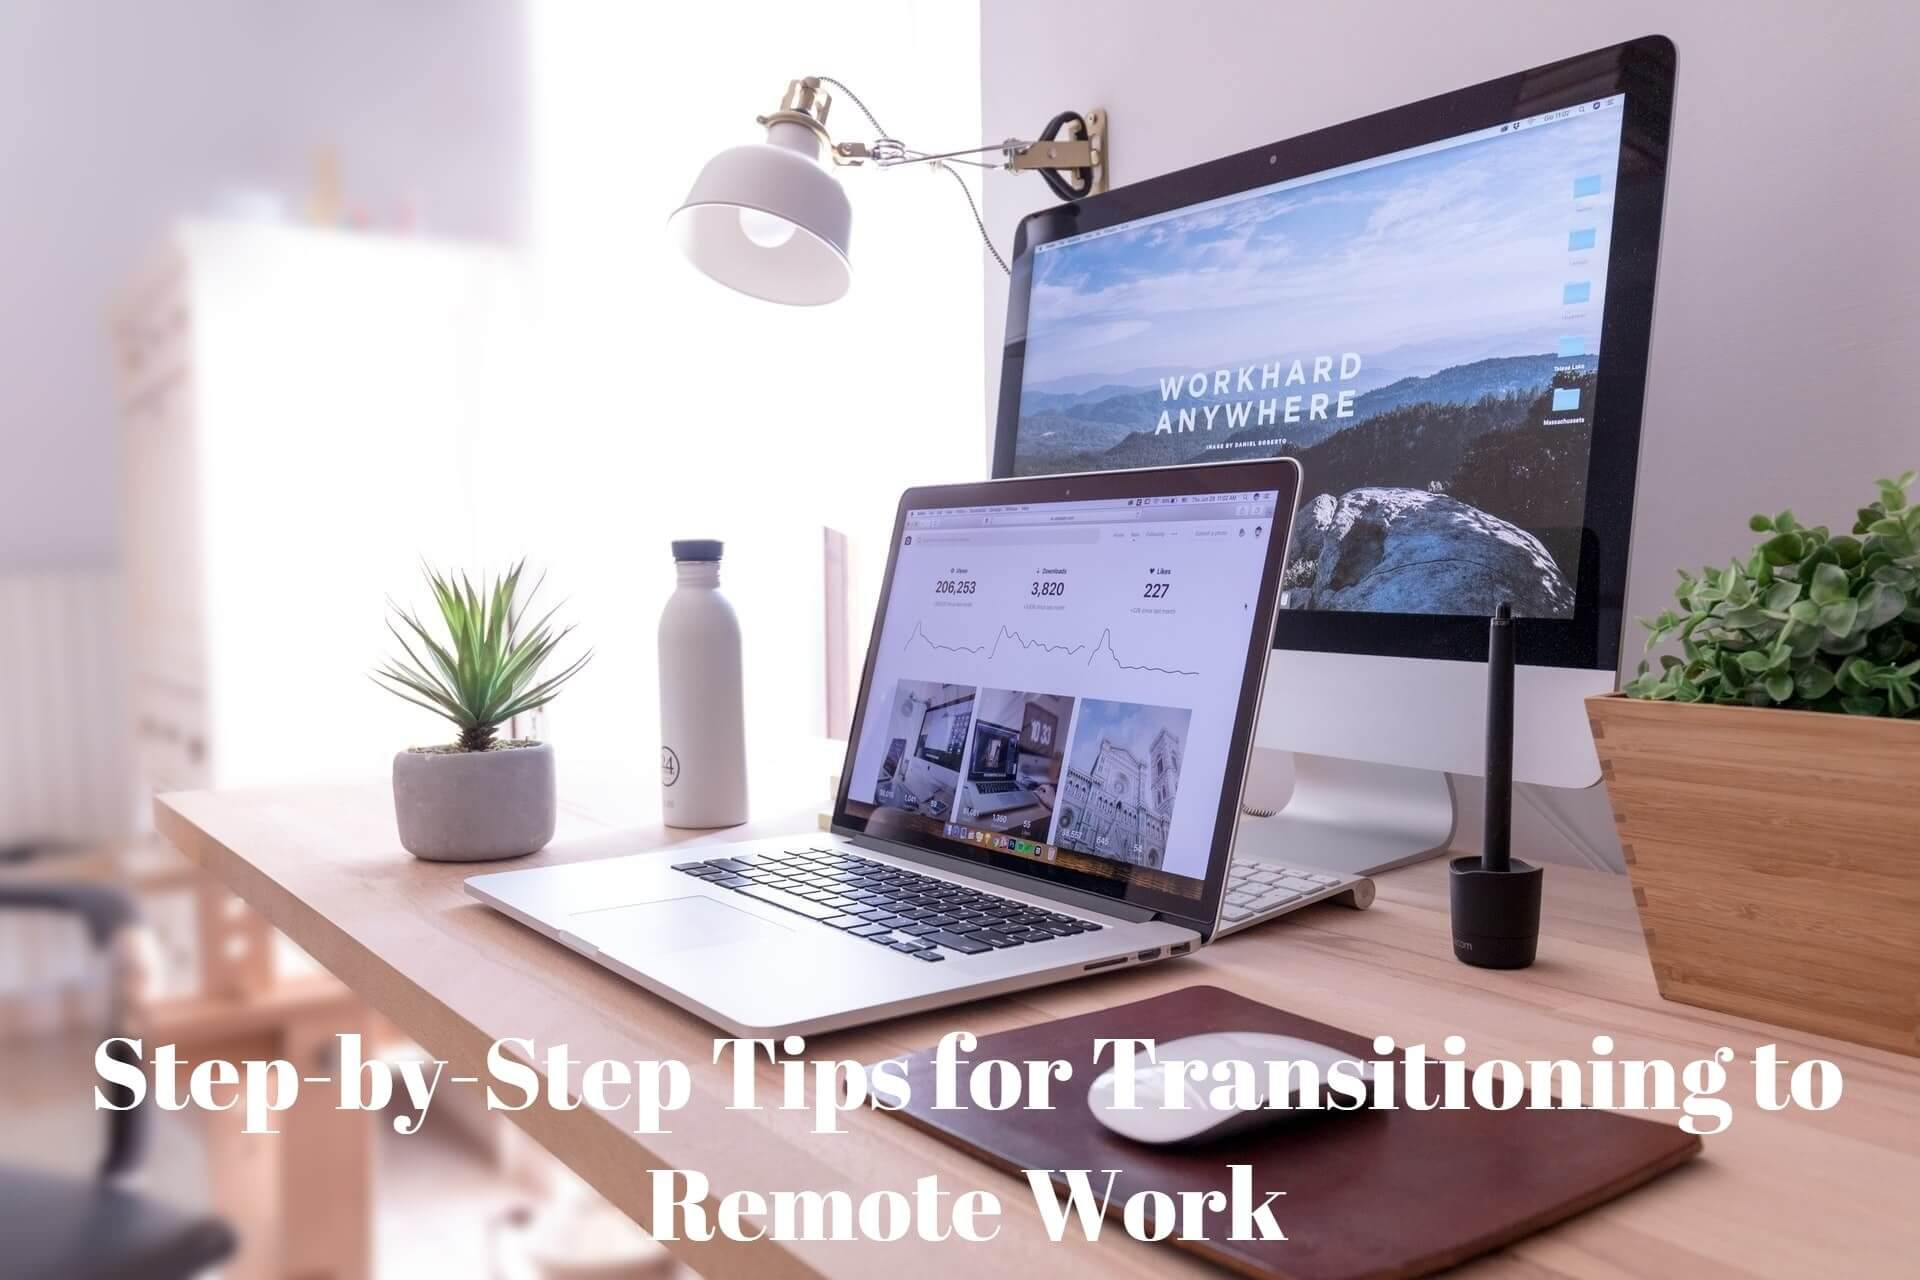 Step-by-Step Tips for Transitioning to Remote Work